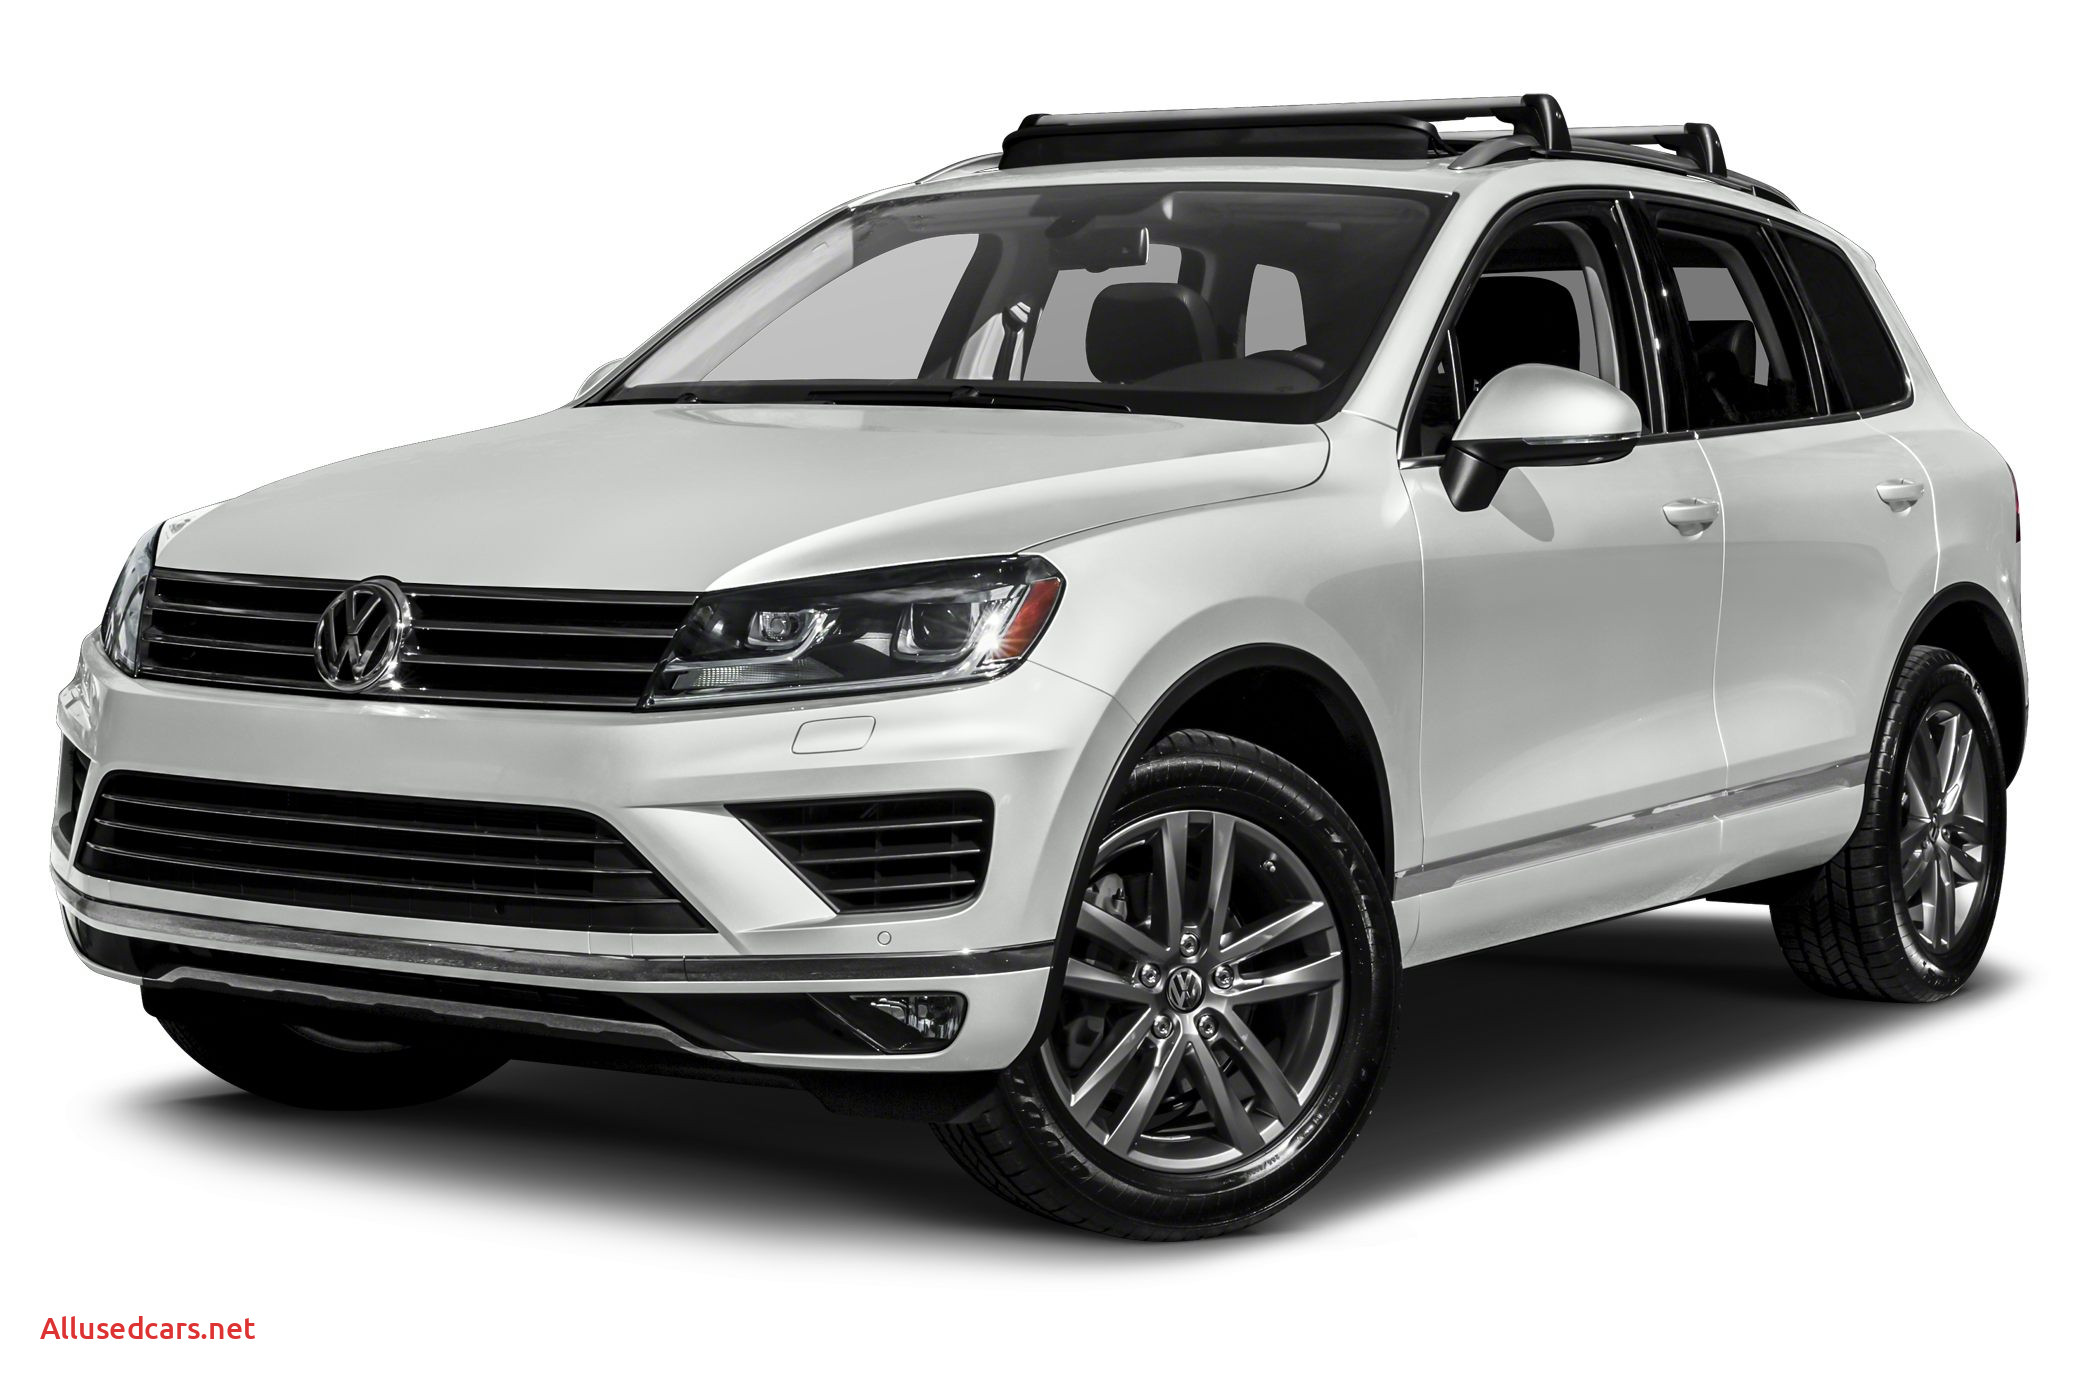 Vw Cars for Sale Near Me Beautiful 2016 Volkswagen touareg Owner Reviews and Ratings